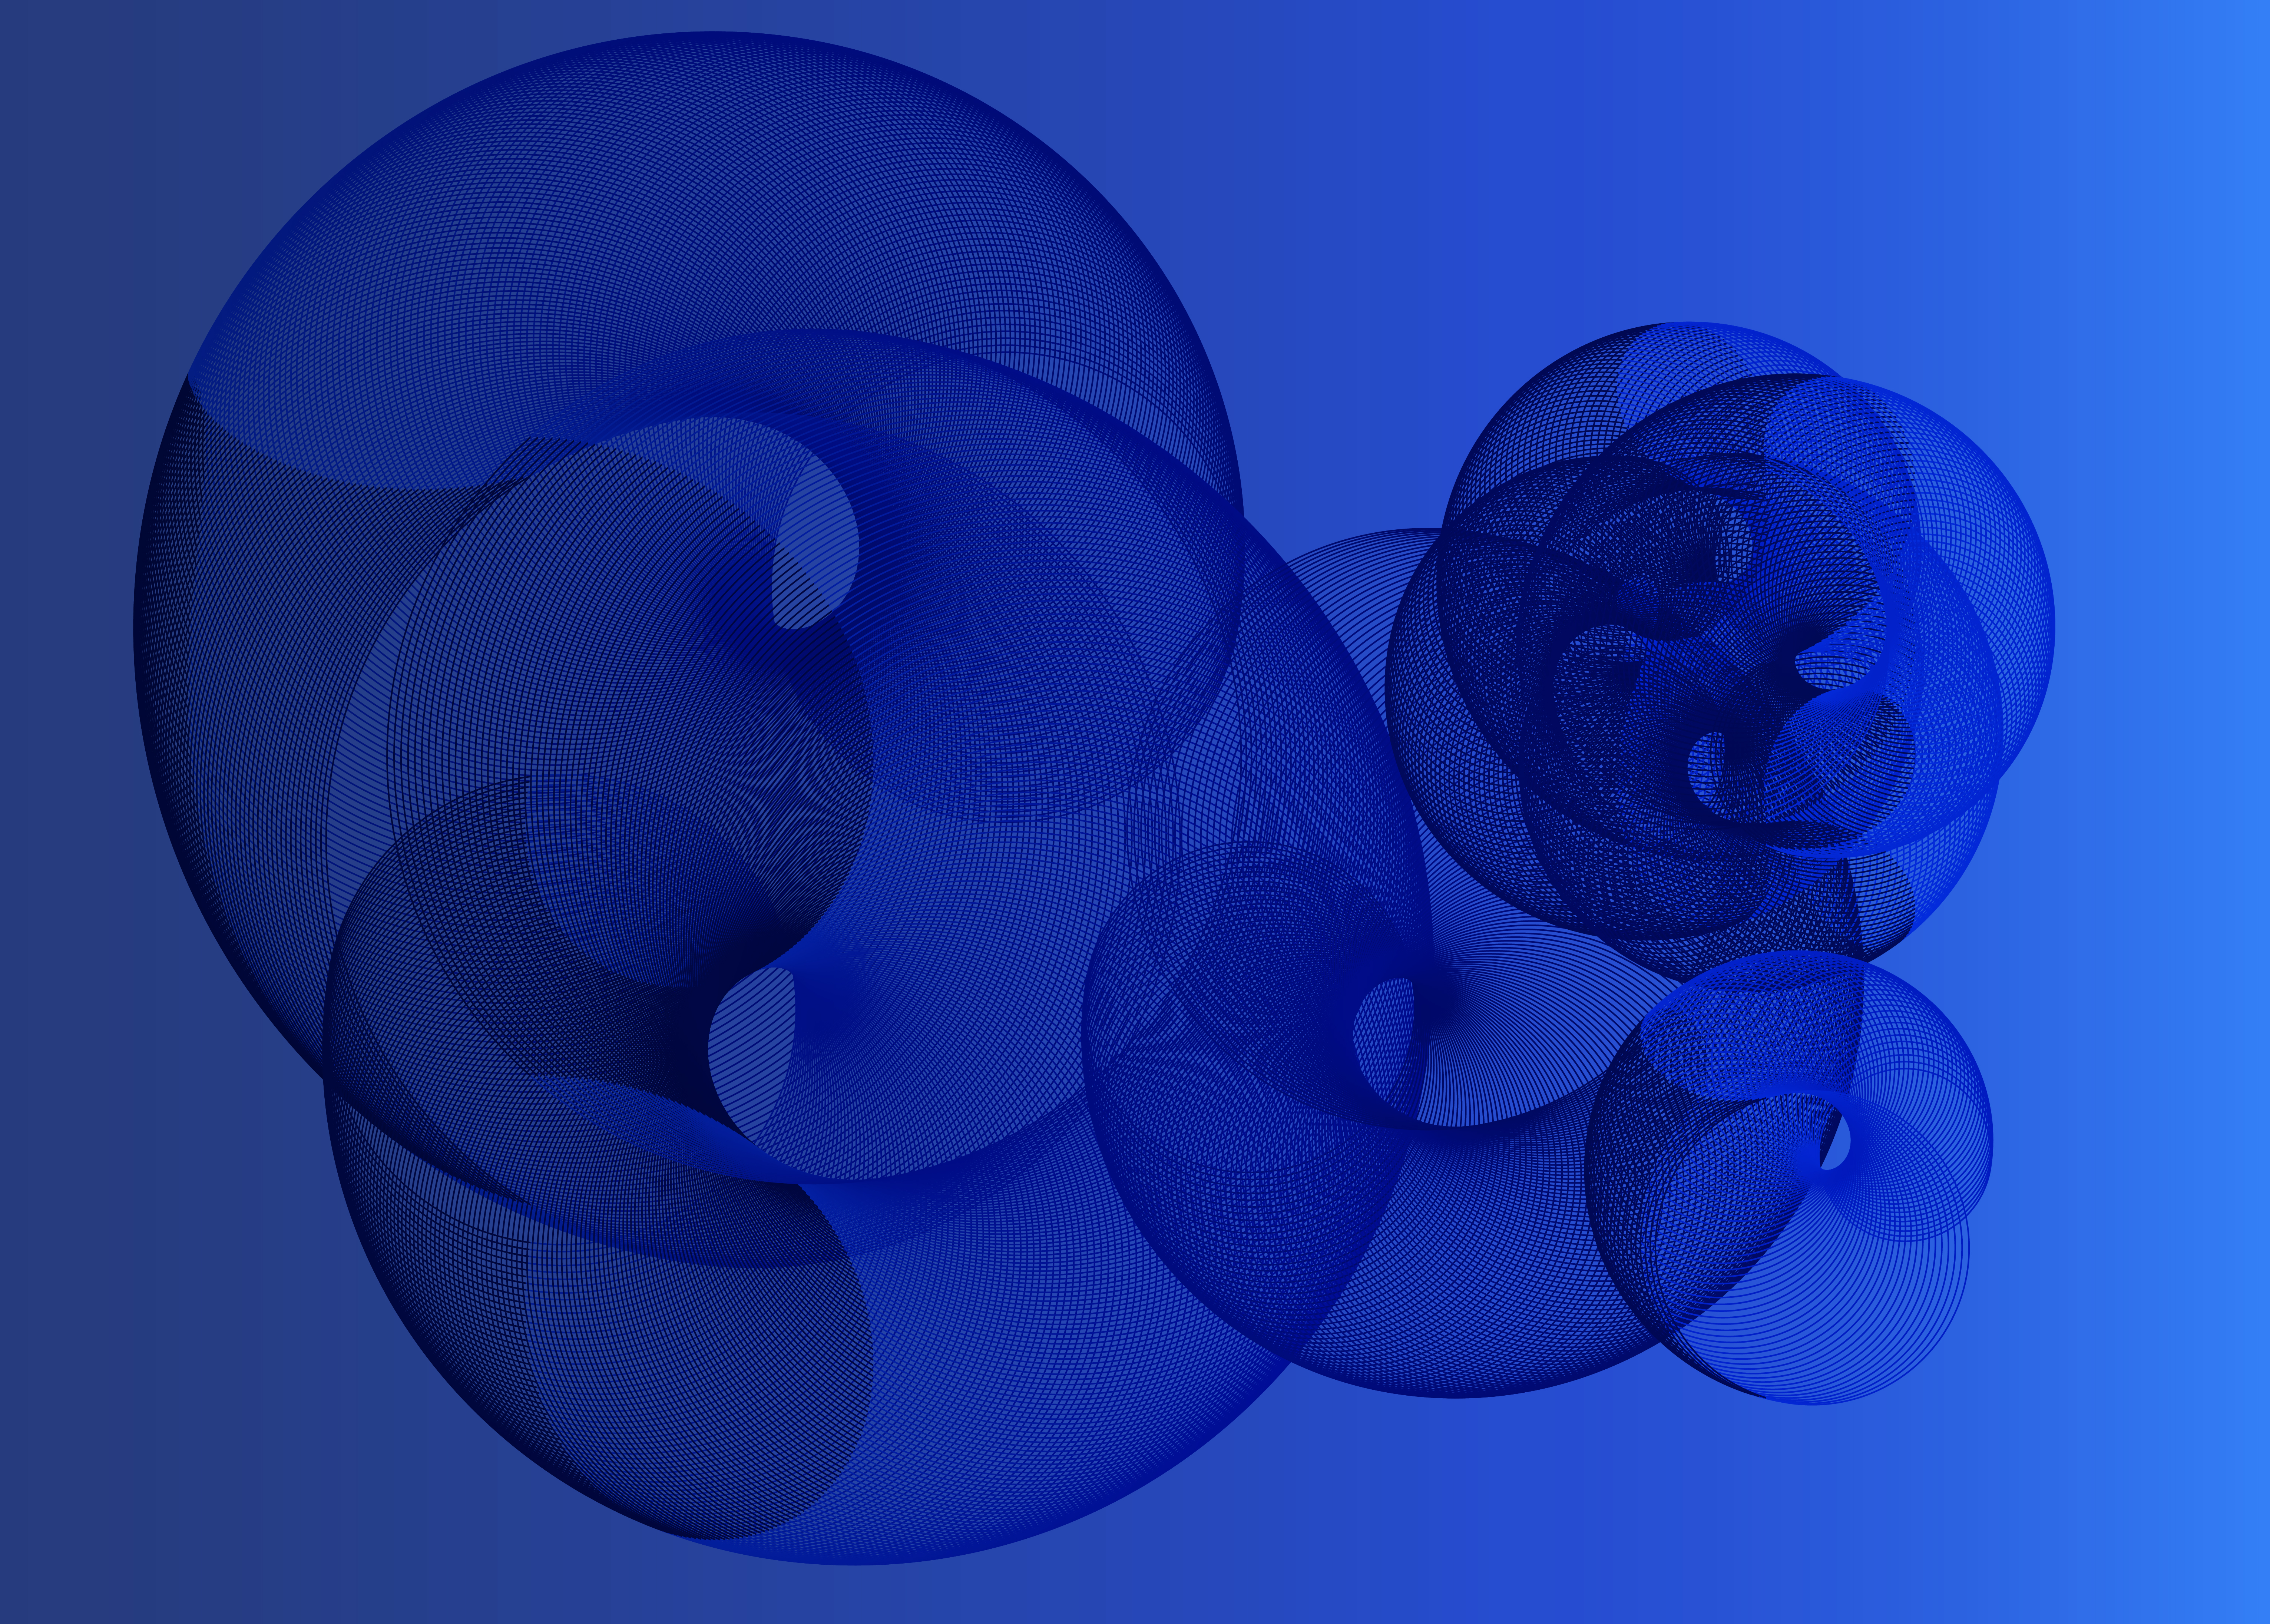 circles in blue, pattern, illustrator